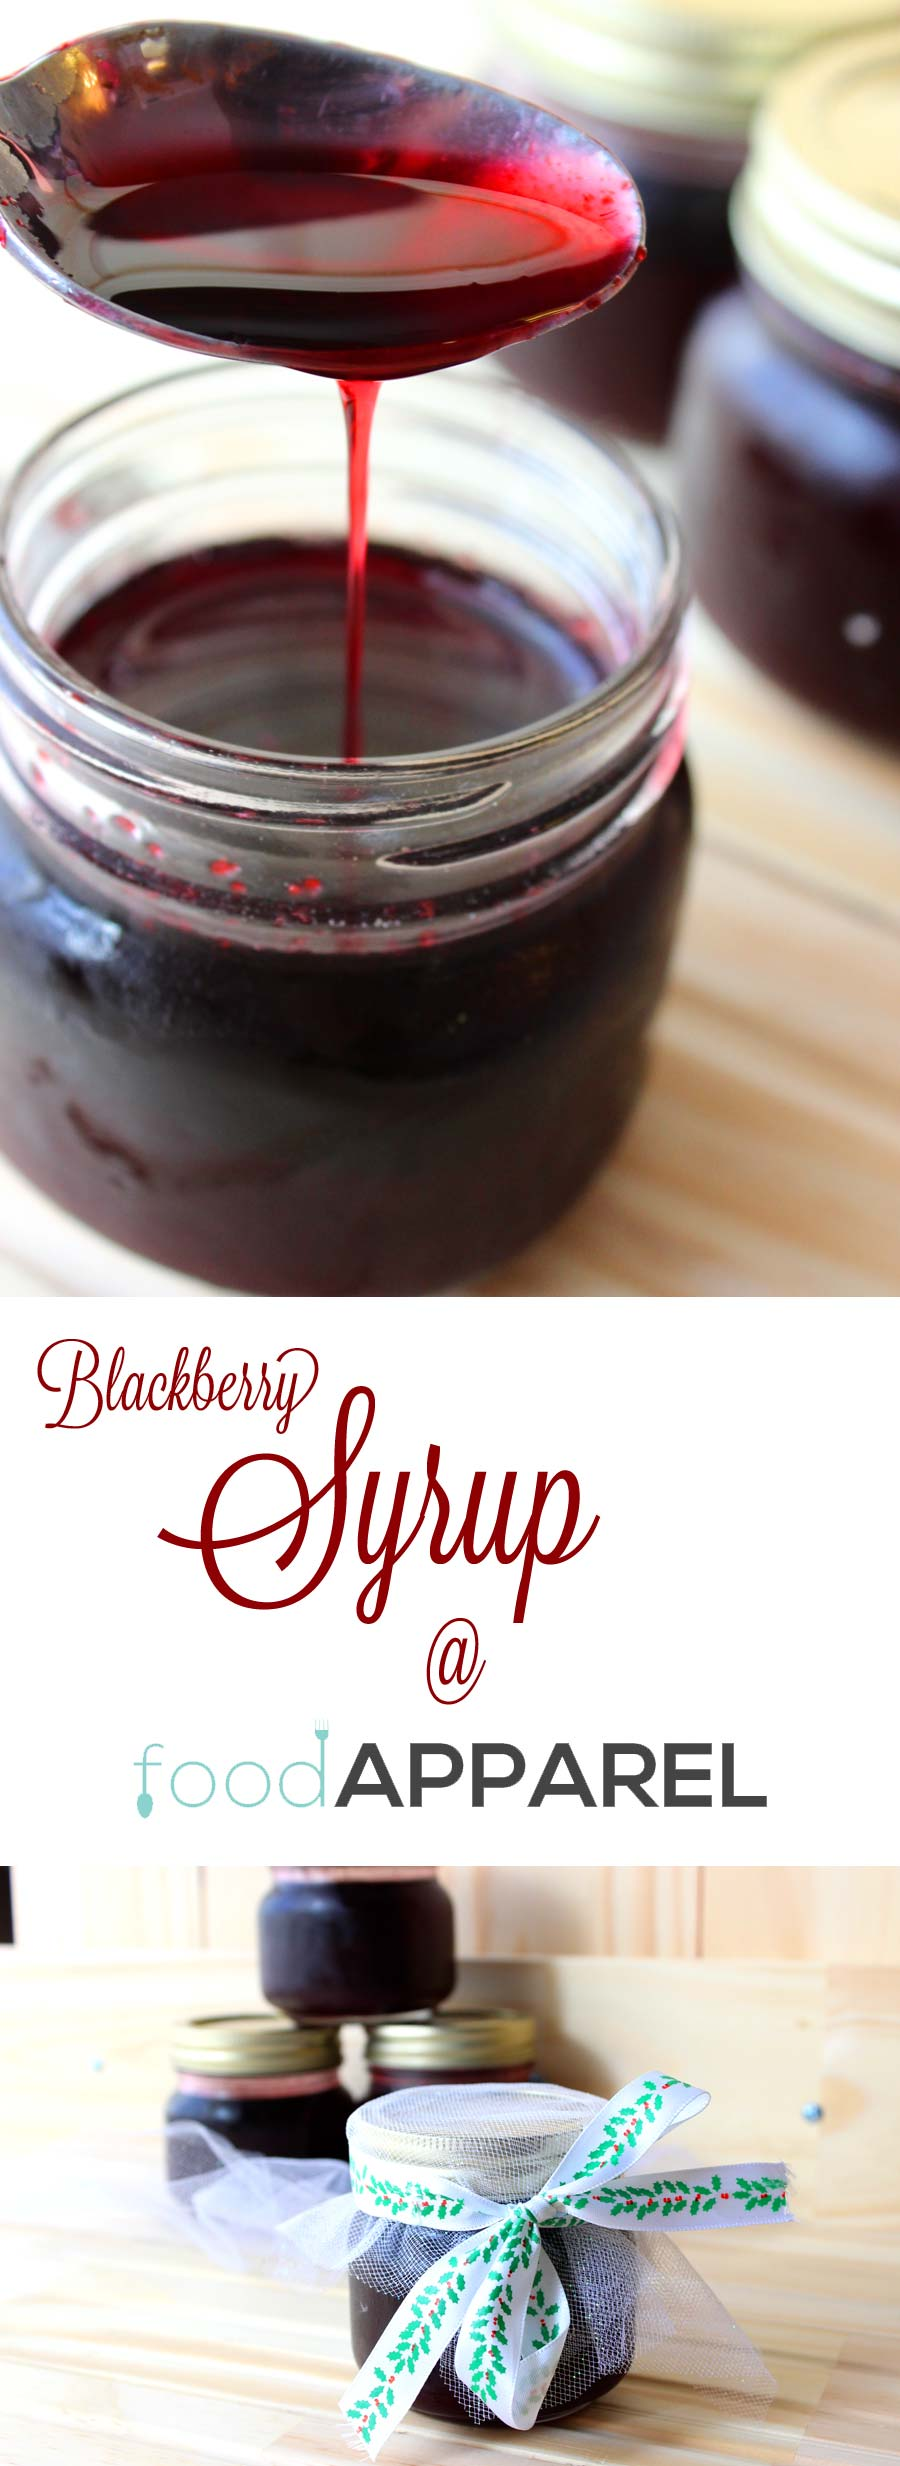 Simple Blackberry Syrup Recipe - easy to make, fabulous to gift! @foodapparel